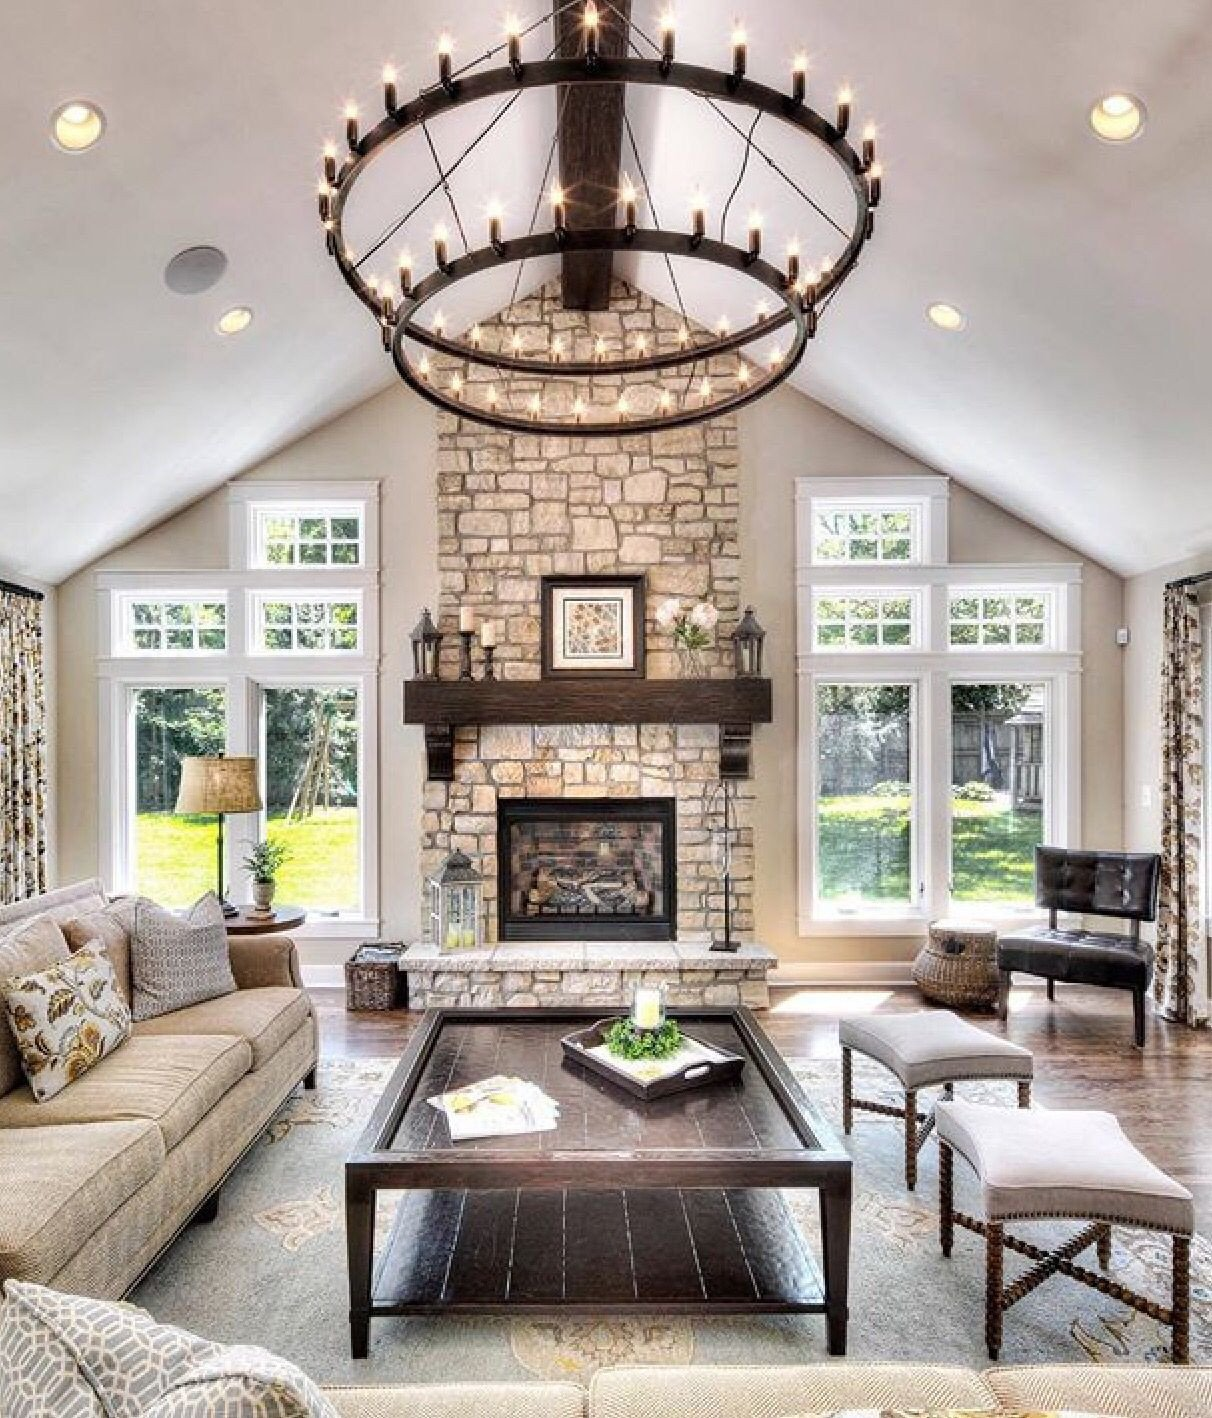 Living Room Decor with Fireplace 21 Home Decor Ideas for Your Traditional Living Room